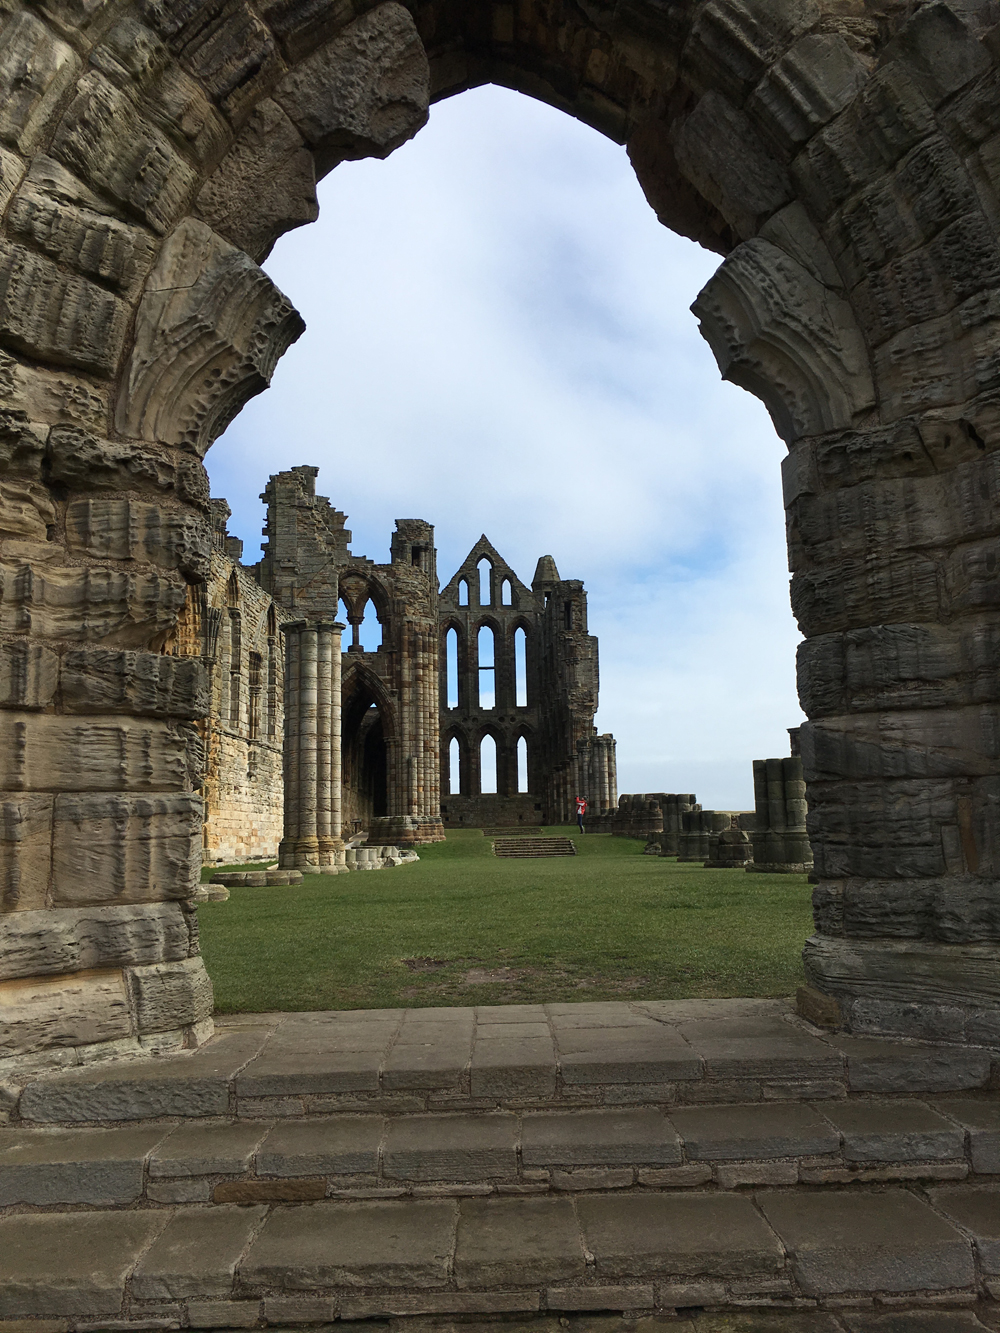 Whitby Abbey - walk up the famous 199 steps to reach the East Cliffs with the Abbey